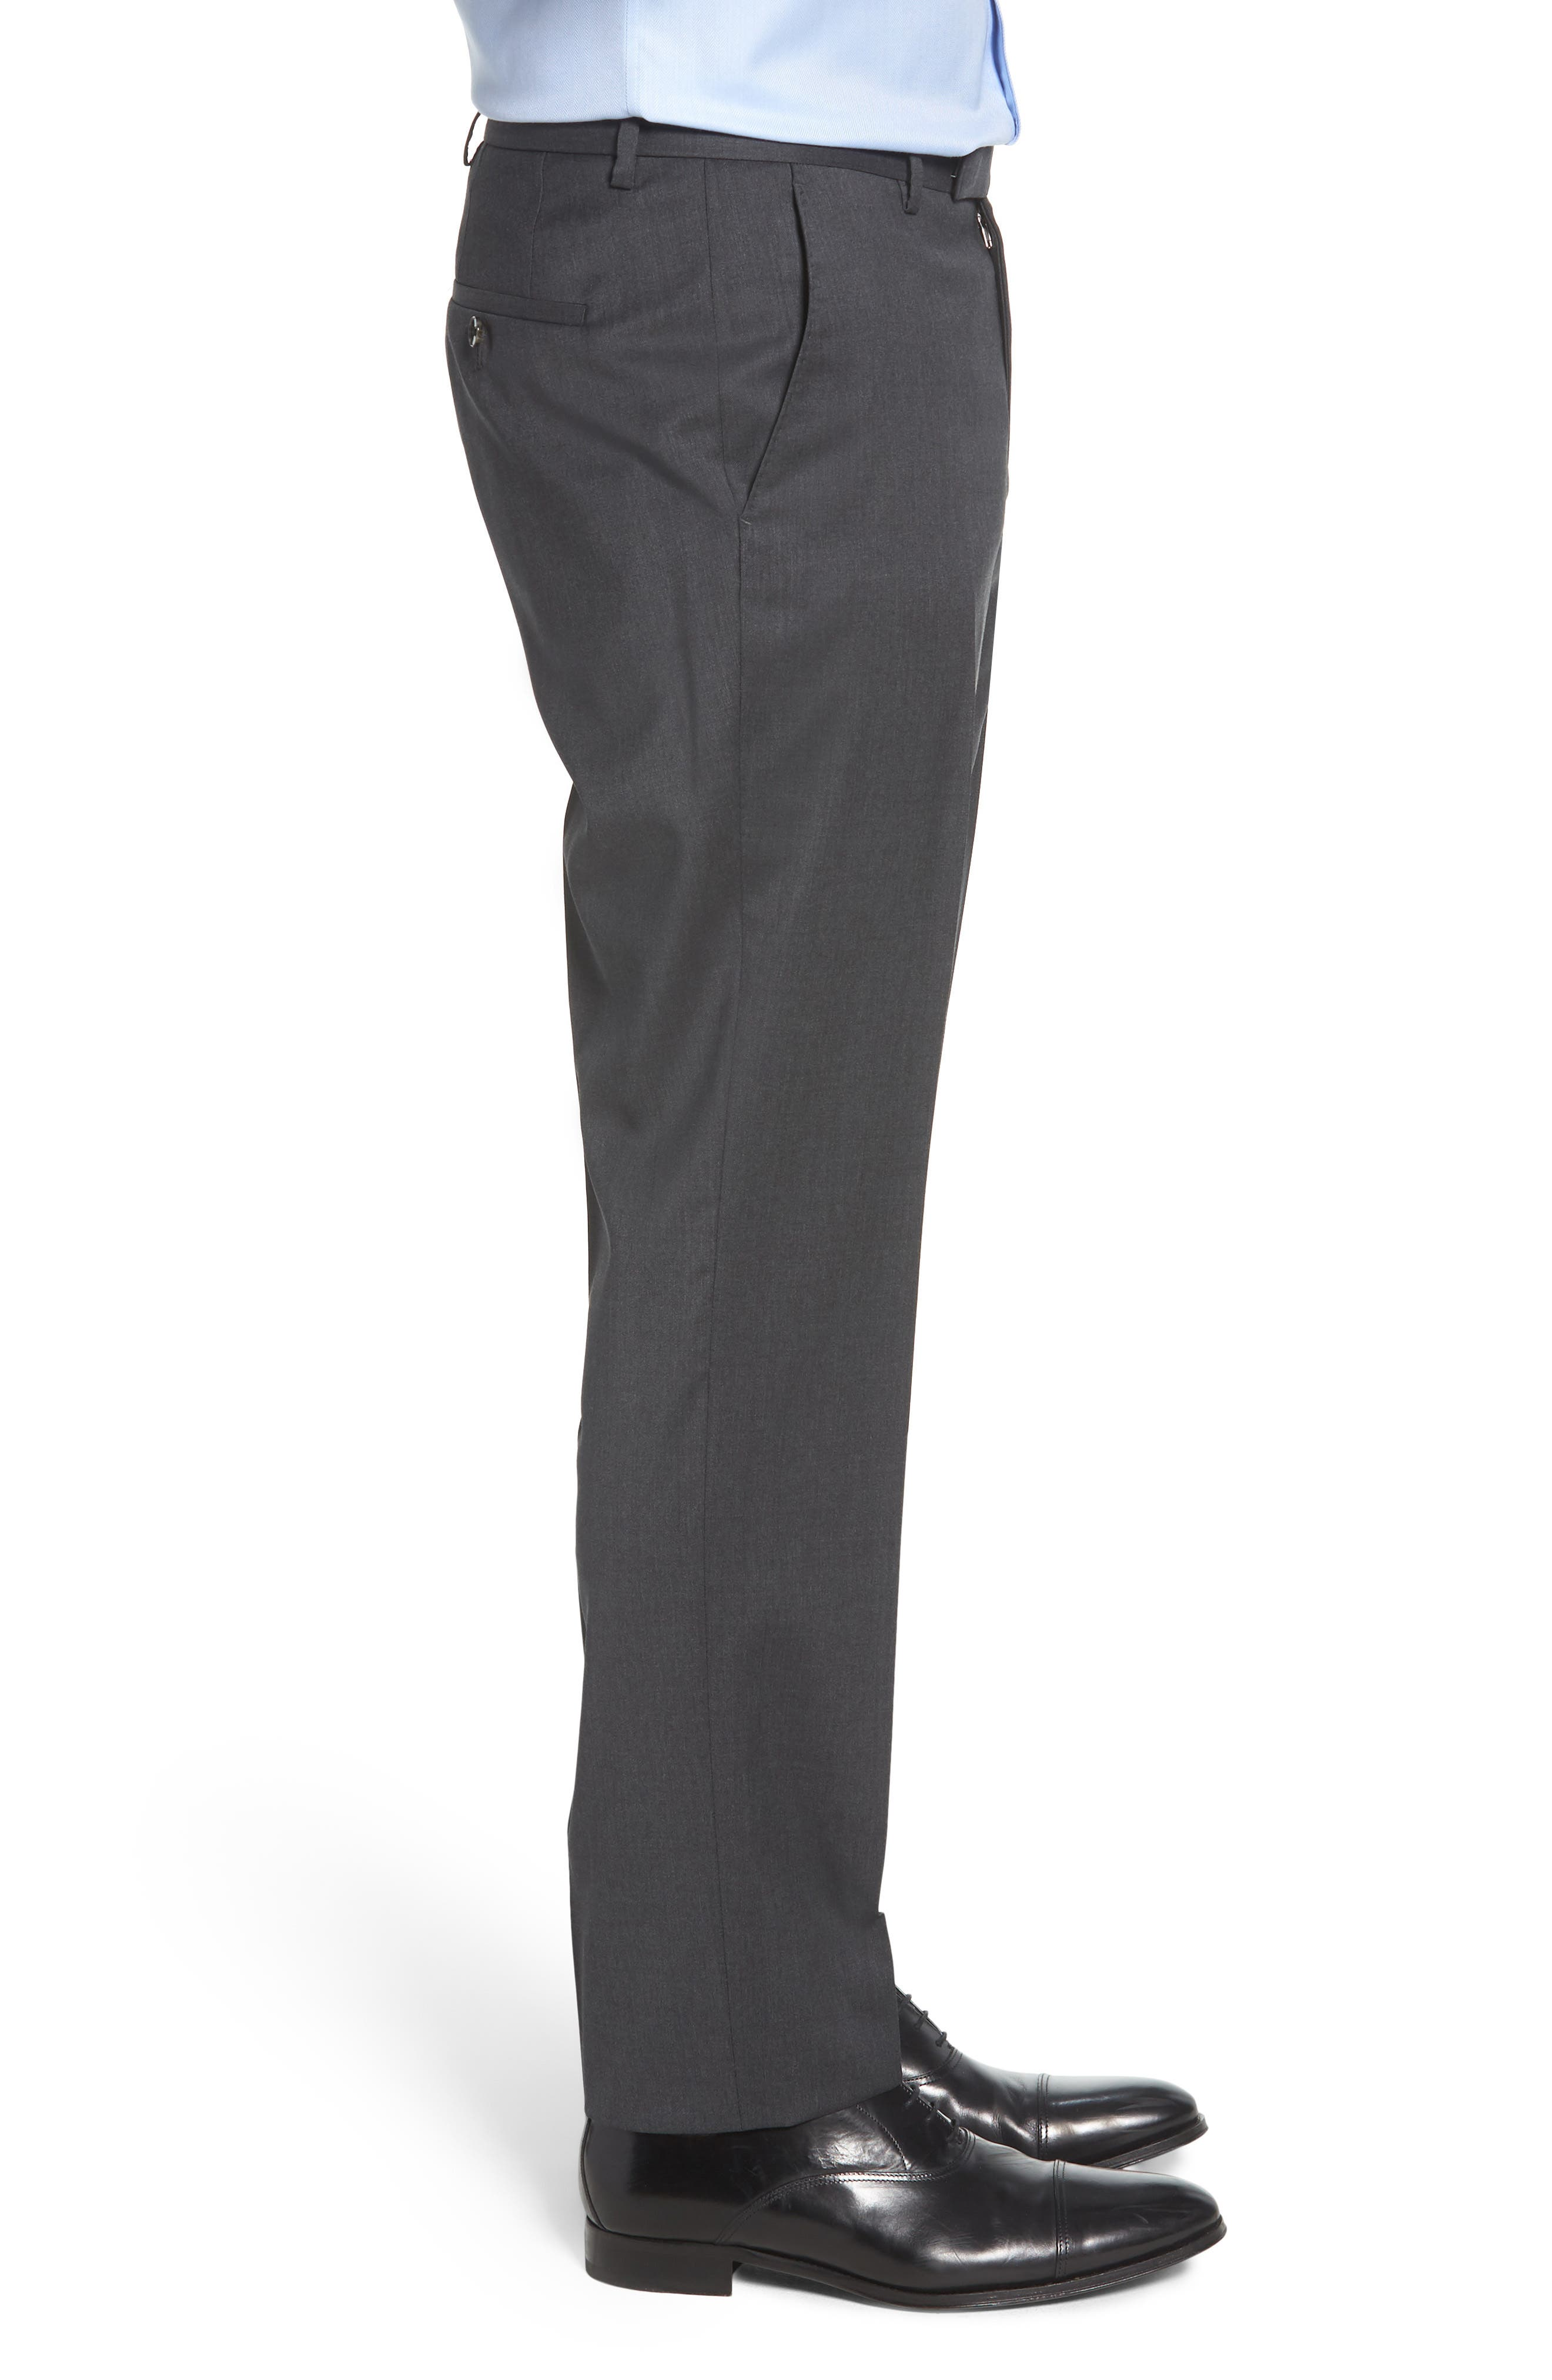 Leenon Flat Front Regular Fit Solid Wool Trousers,                             Alternate thumbnail 3, color,                             CHARCOAL